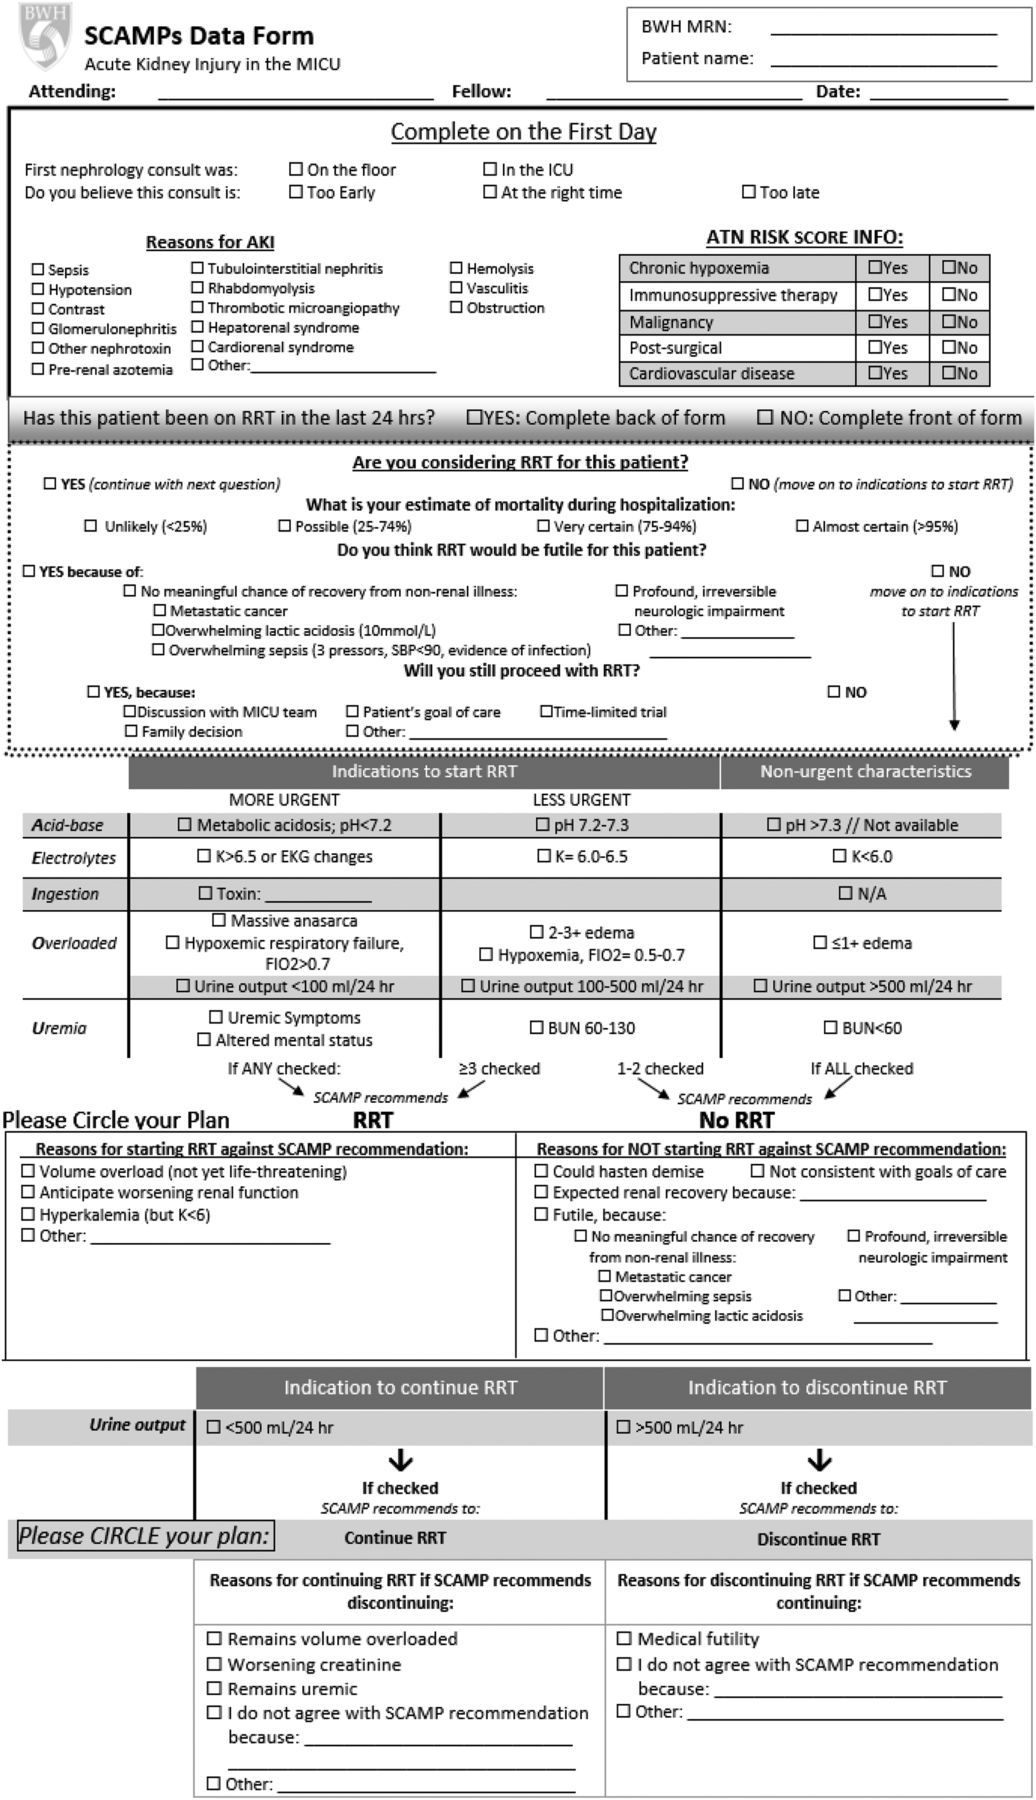 A Decision-Making Algorithm for Initiation and Discontinuation of